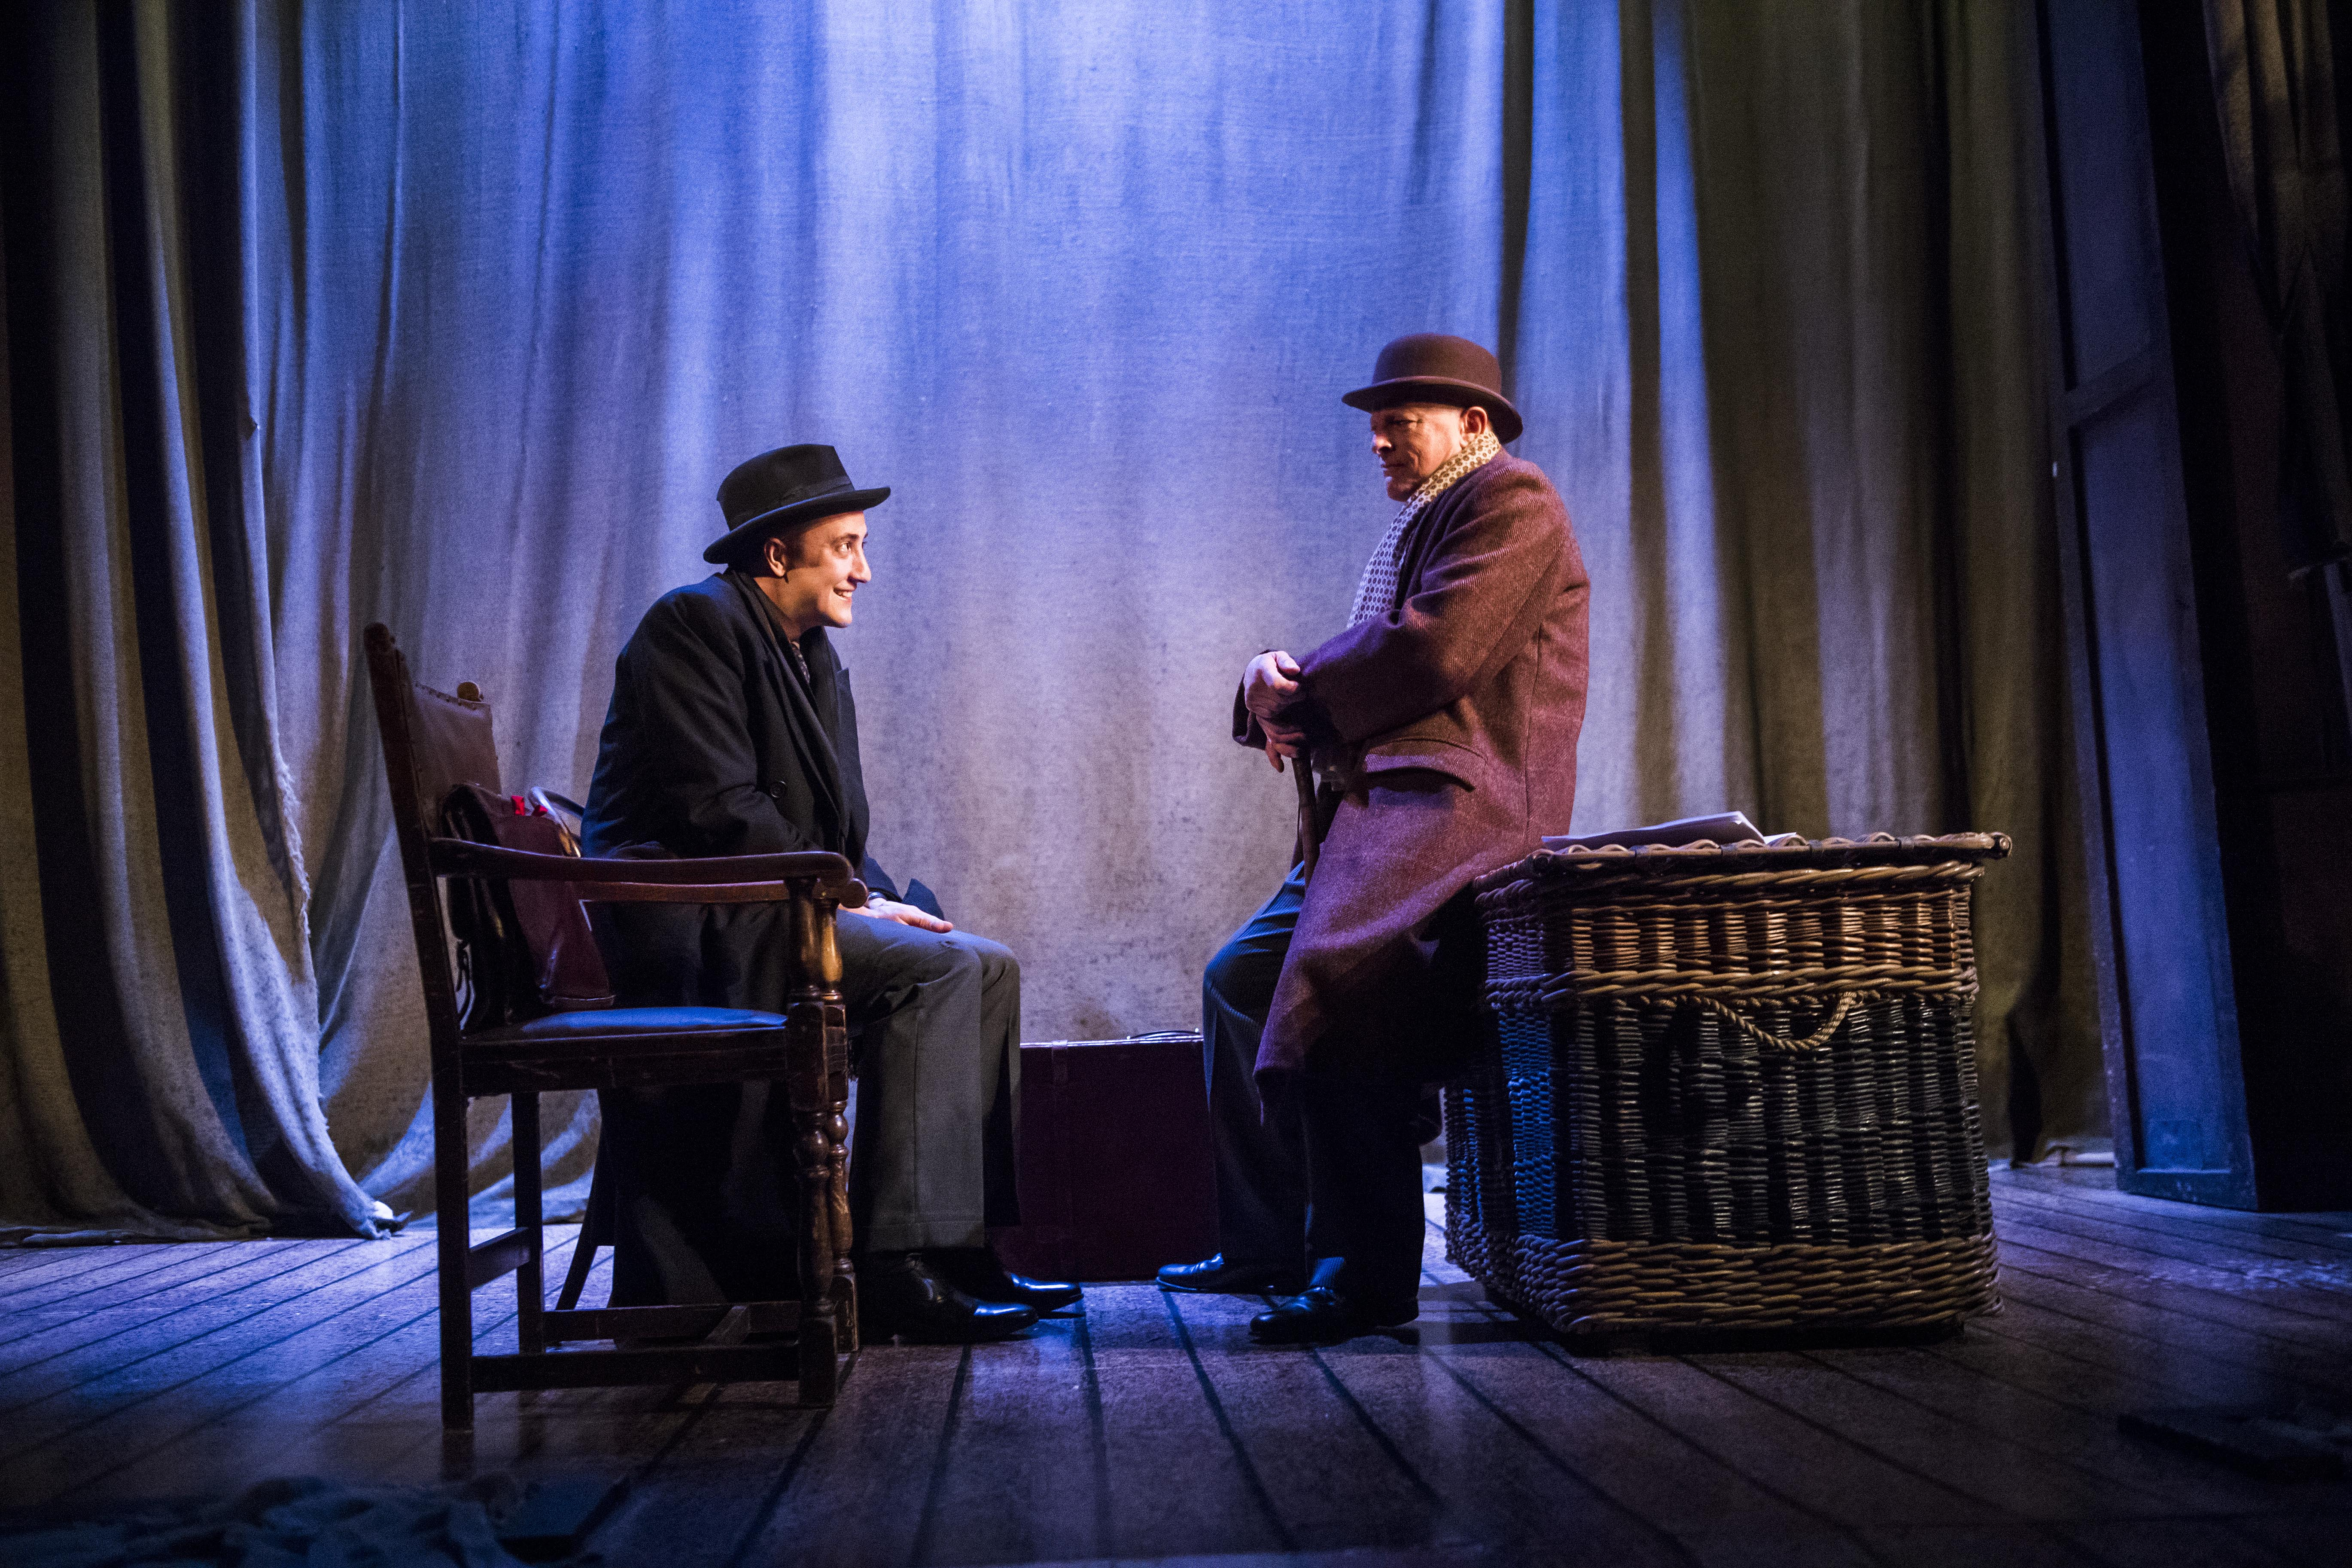 woman in black theatre review essay Read this full essay on the woman in black review my first impression of the fortune theatre was it was a very old victorian building, very small and slightly ragged upon entering it felt very cramped and made you feel claustrophobic.